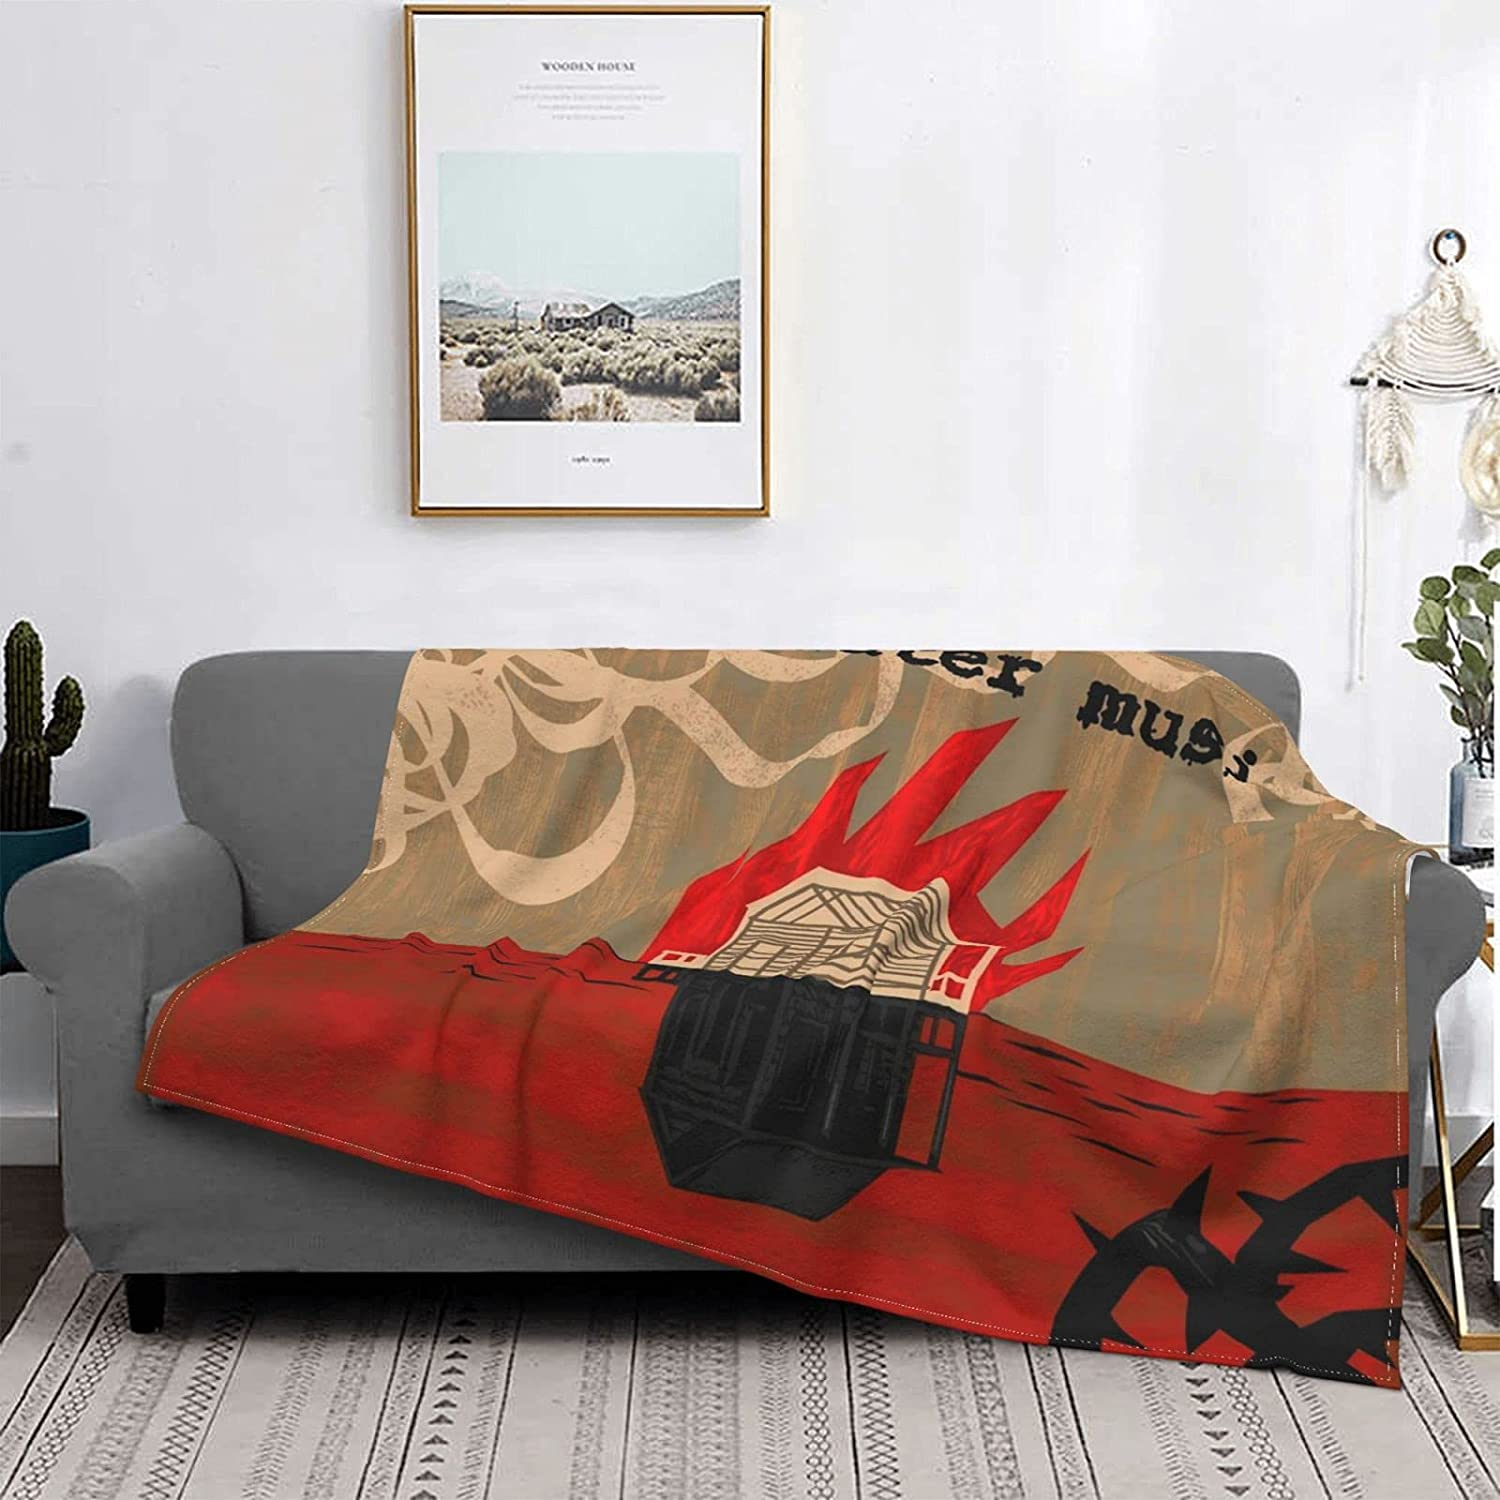 Ho_T Wa_TER M_Usi_C Excellence Super Soft Luxurious Cozy Fuzzy Lightweight 2021 autumn and winter new